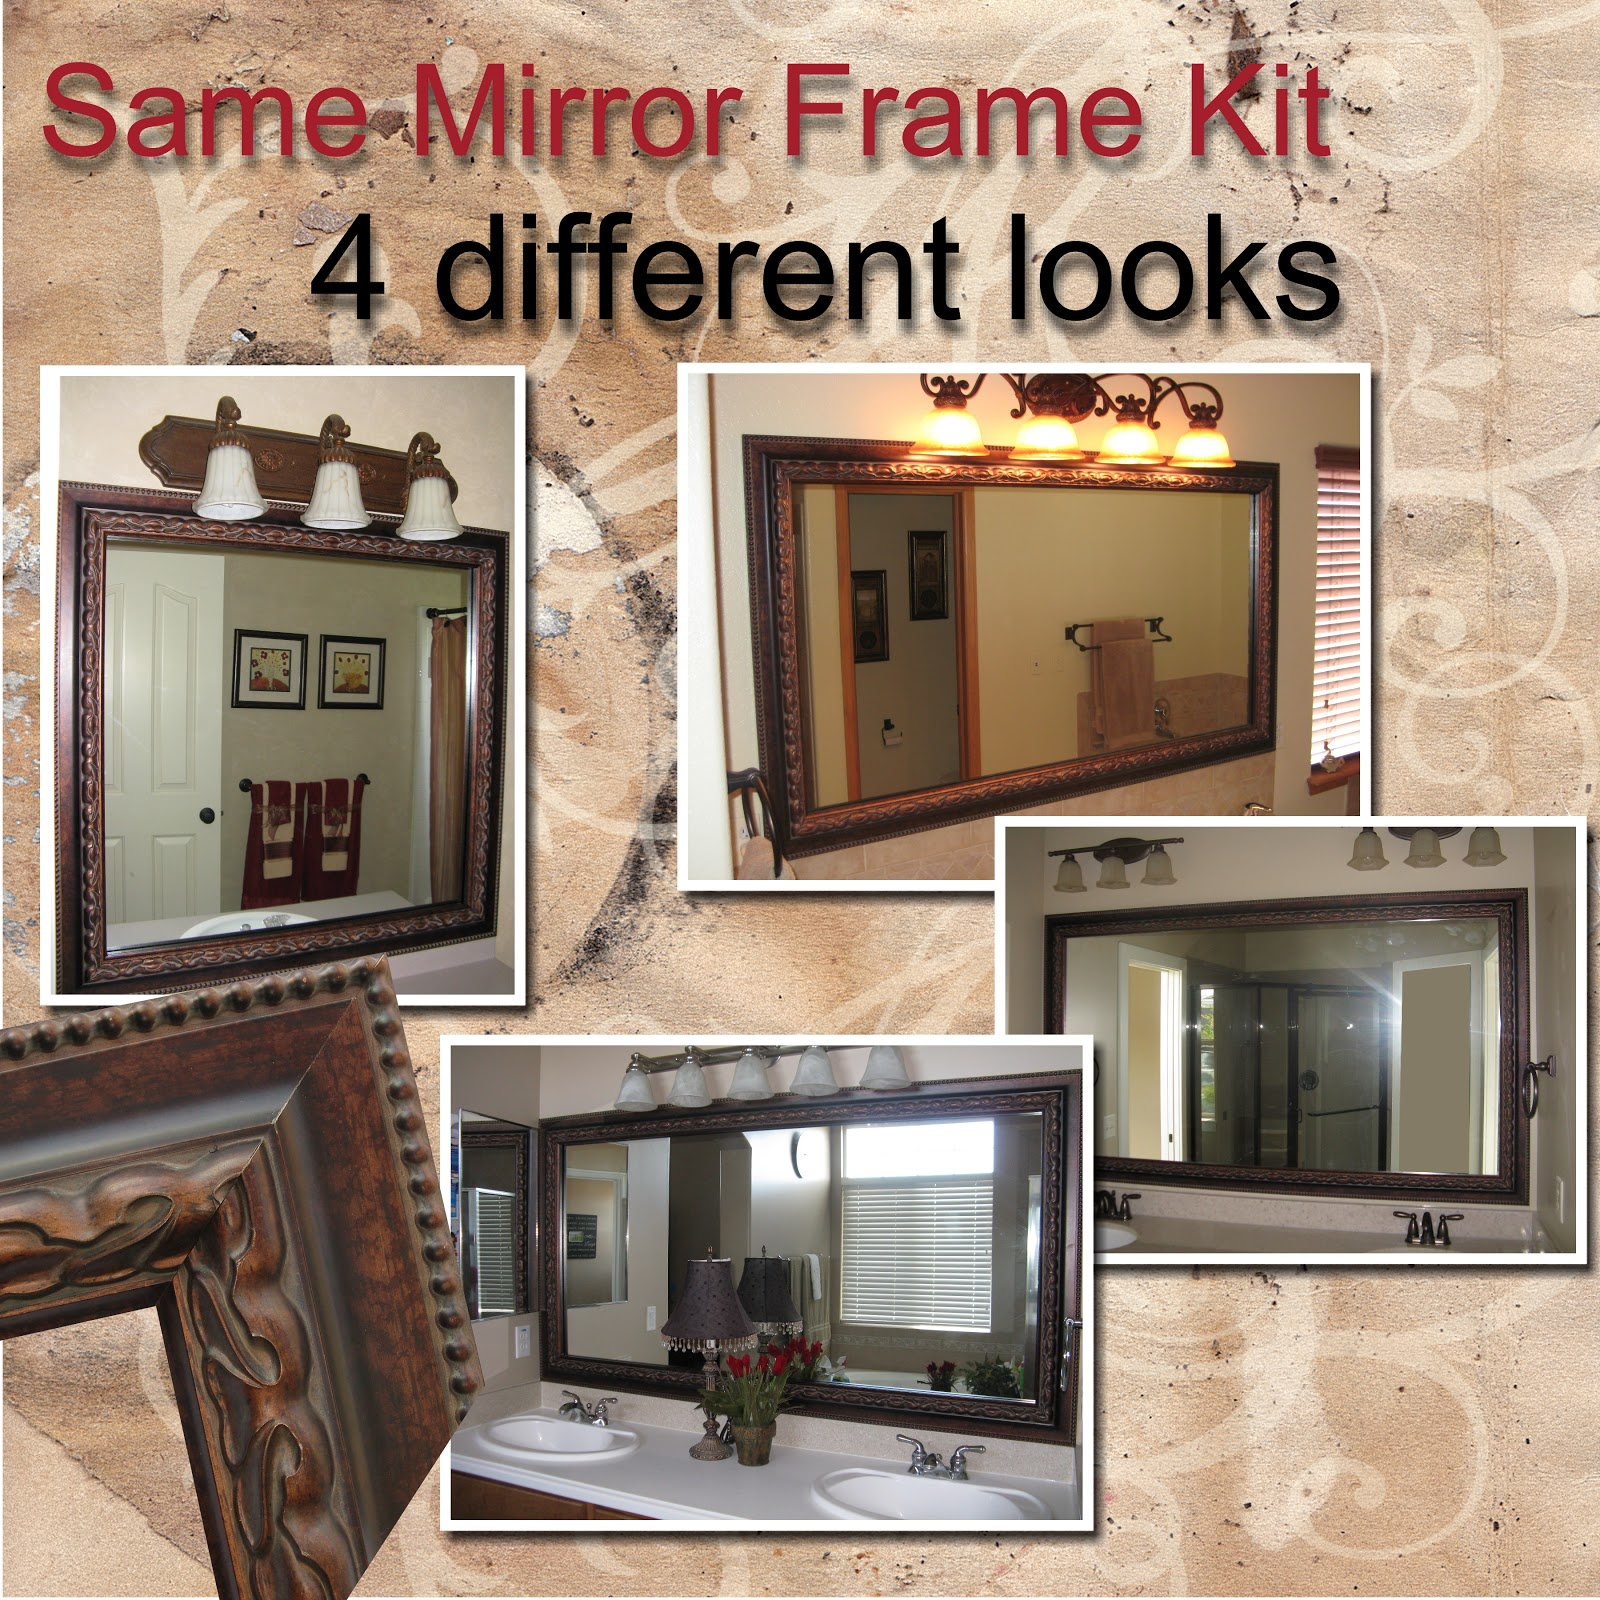 Same Mirror Frame Kit 4 Different Looks